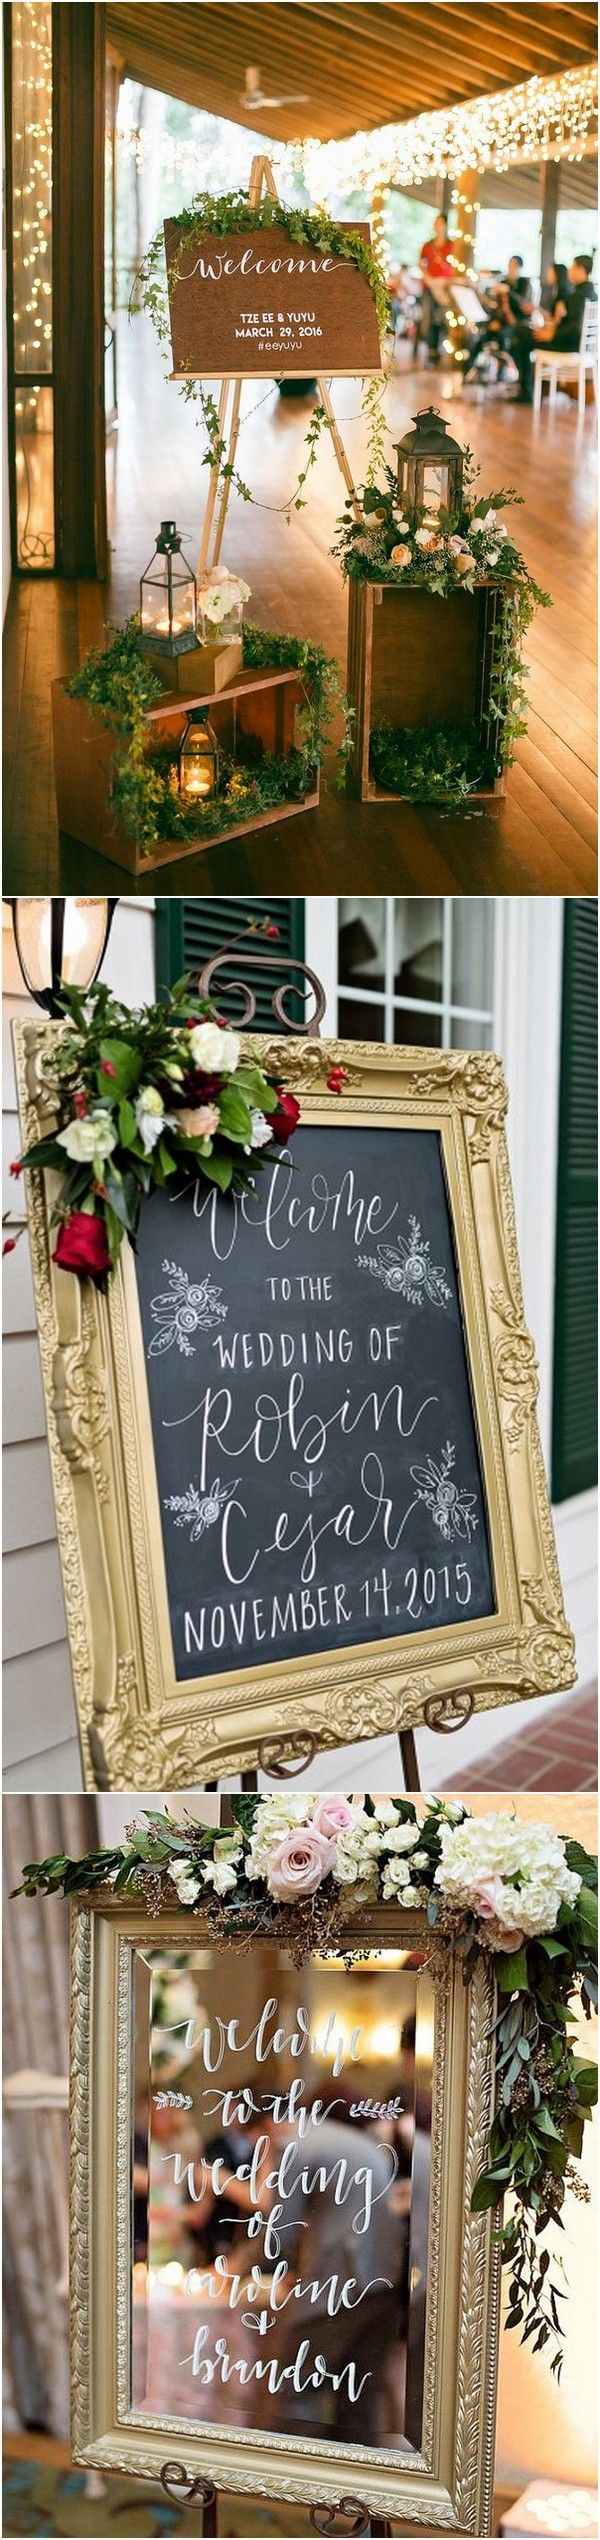 brilliant wedding welcome sign ideas for ceremony and reception